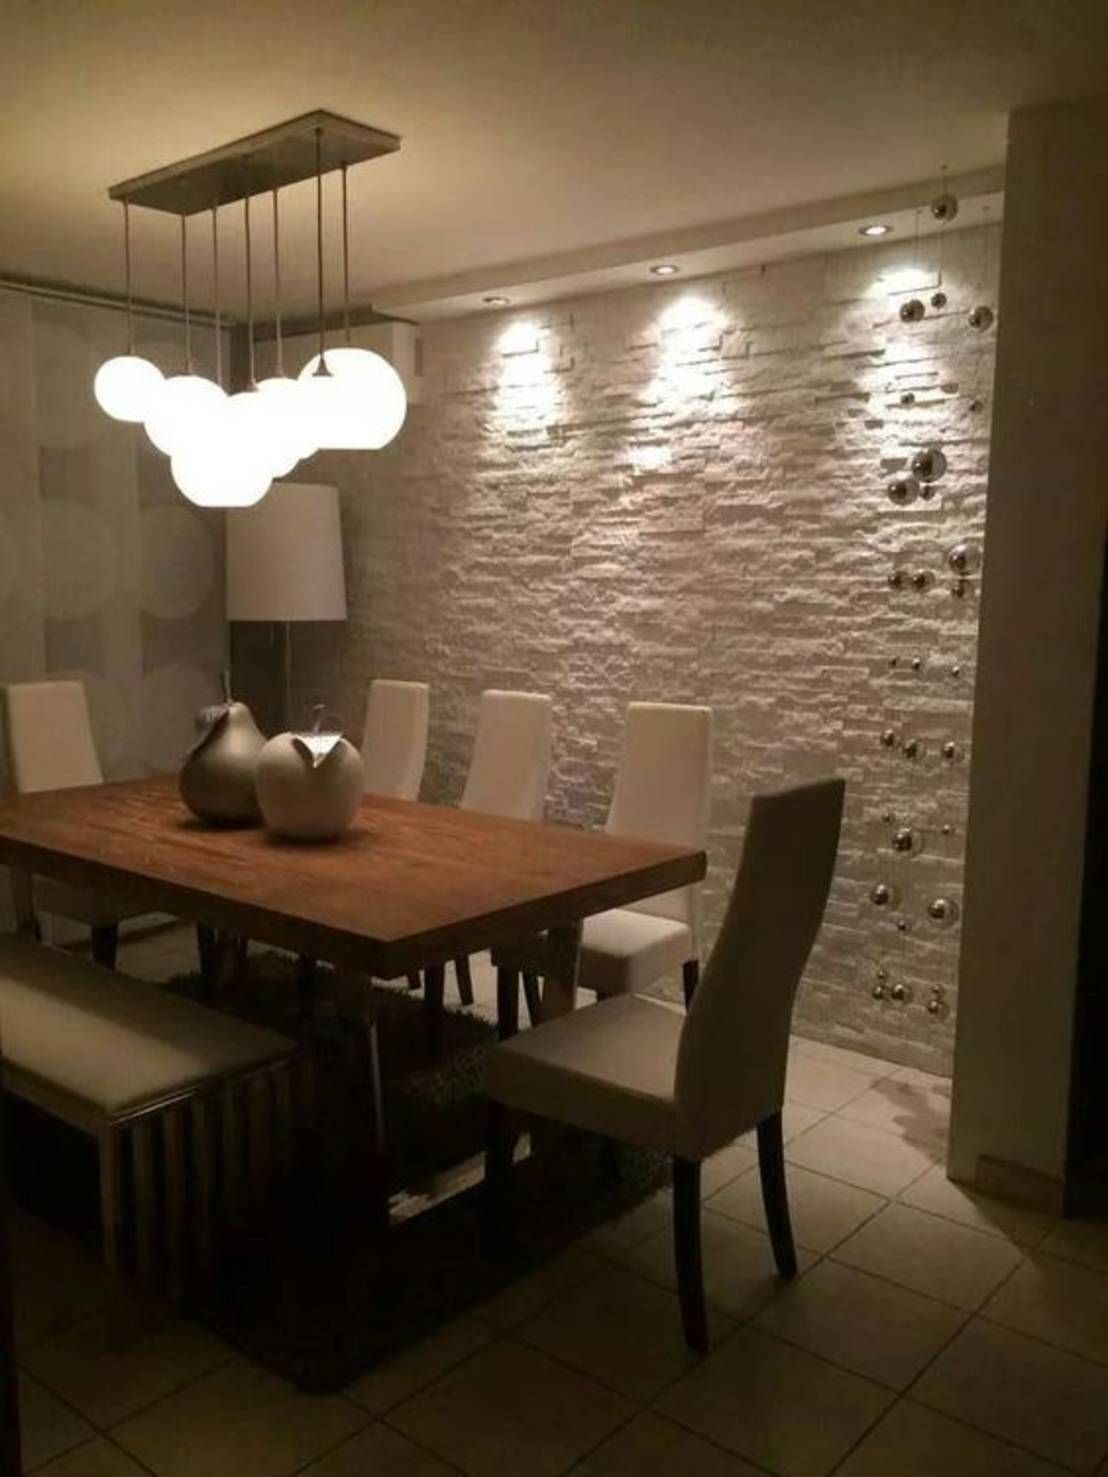 13 ideas para decorar tu casa con piedra y que luzca muy for Tips para decorar tu casa